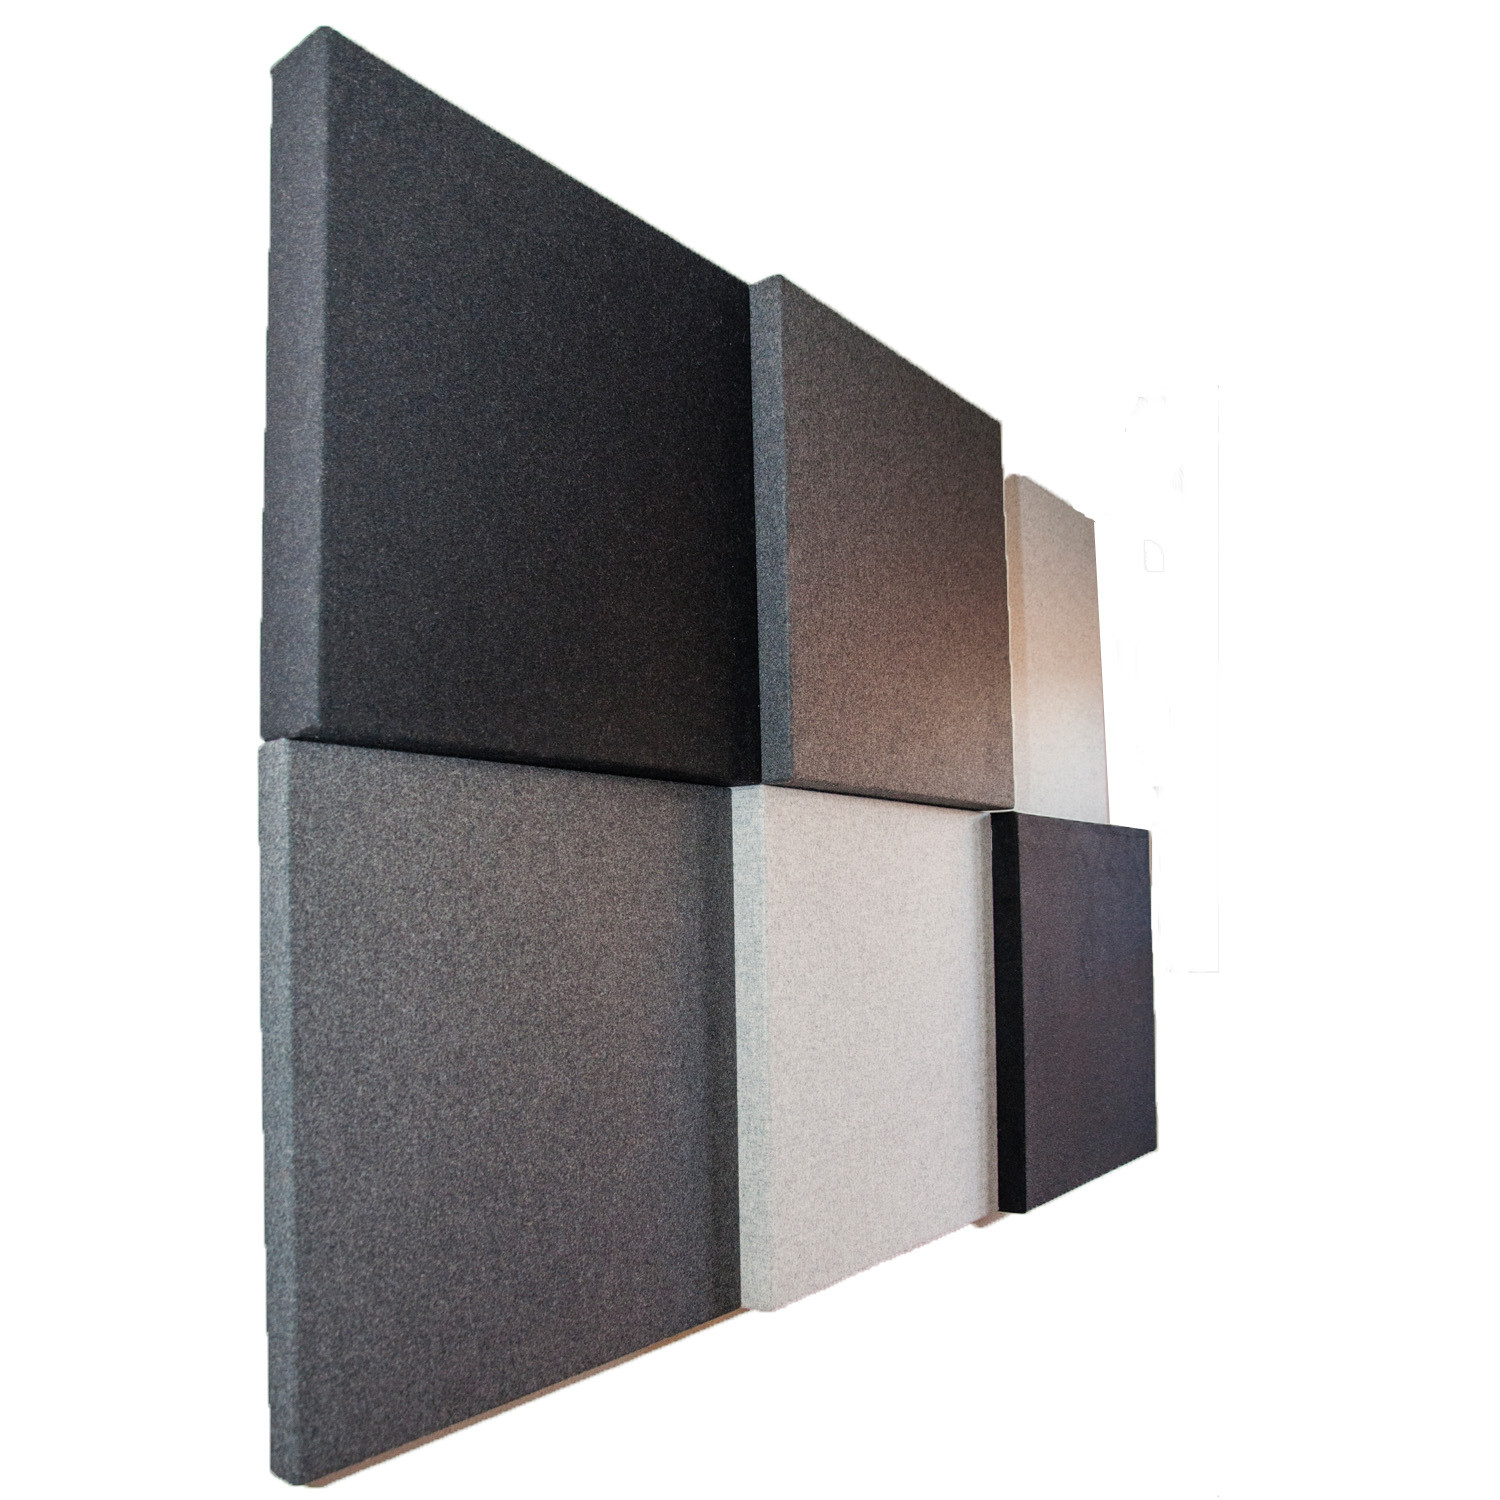 BuzziBlox Wall Panels